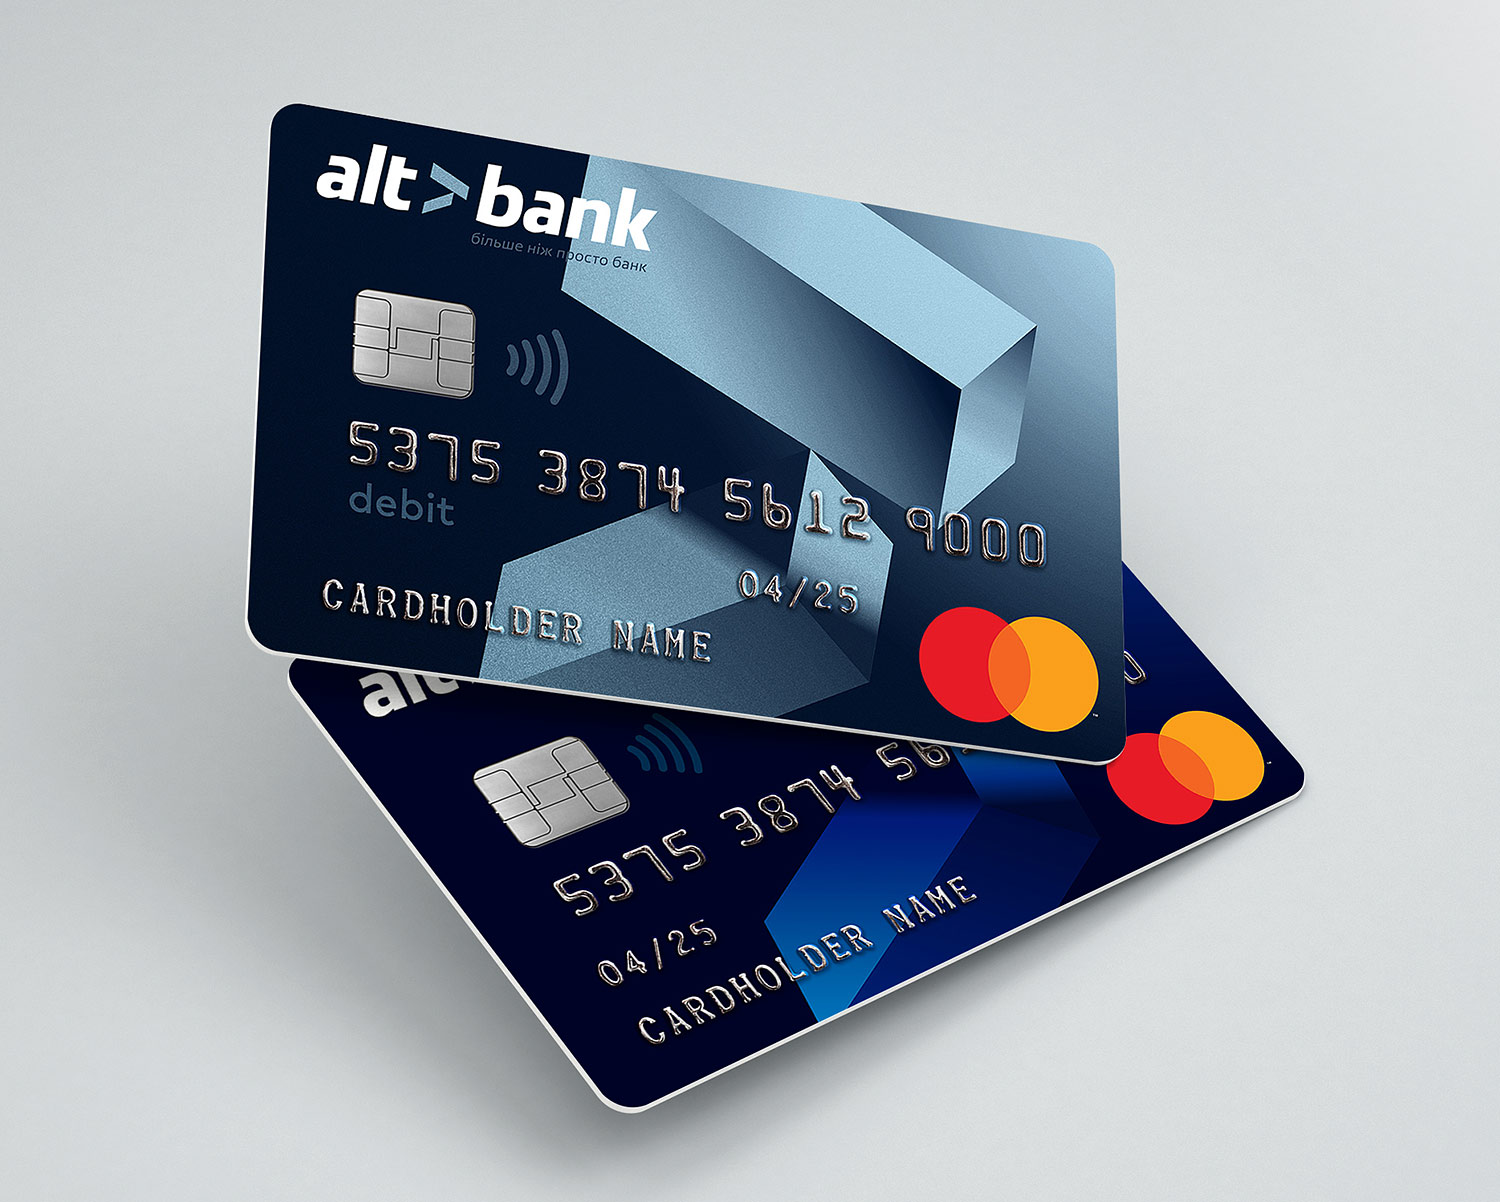 Mastercard debit and credit cards. Altbank bank card design.